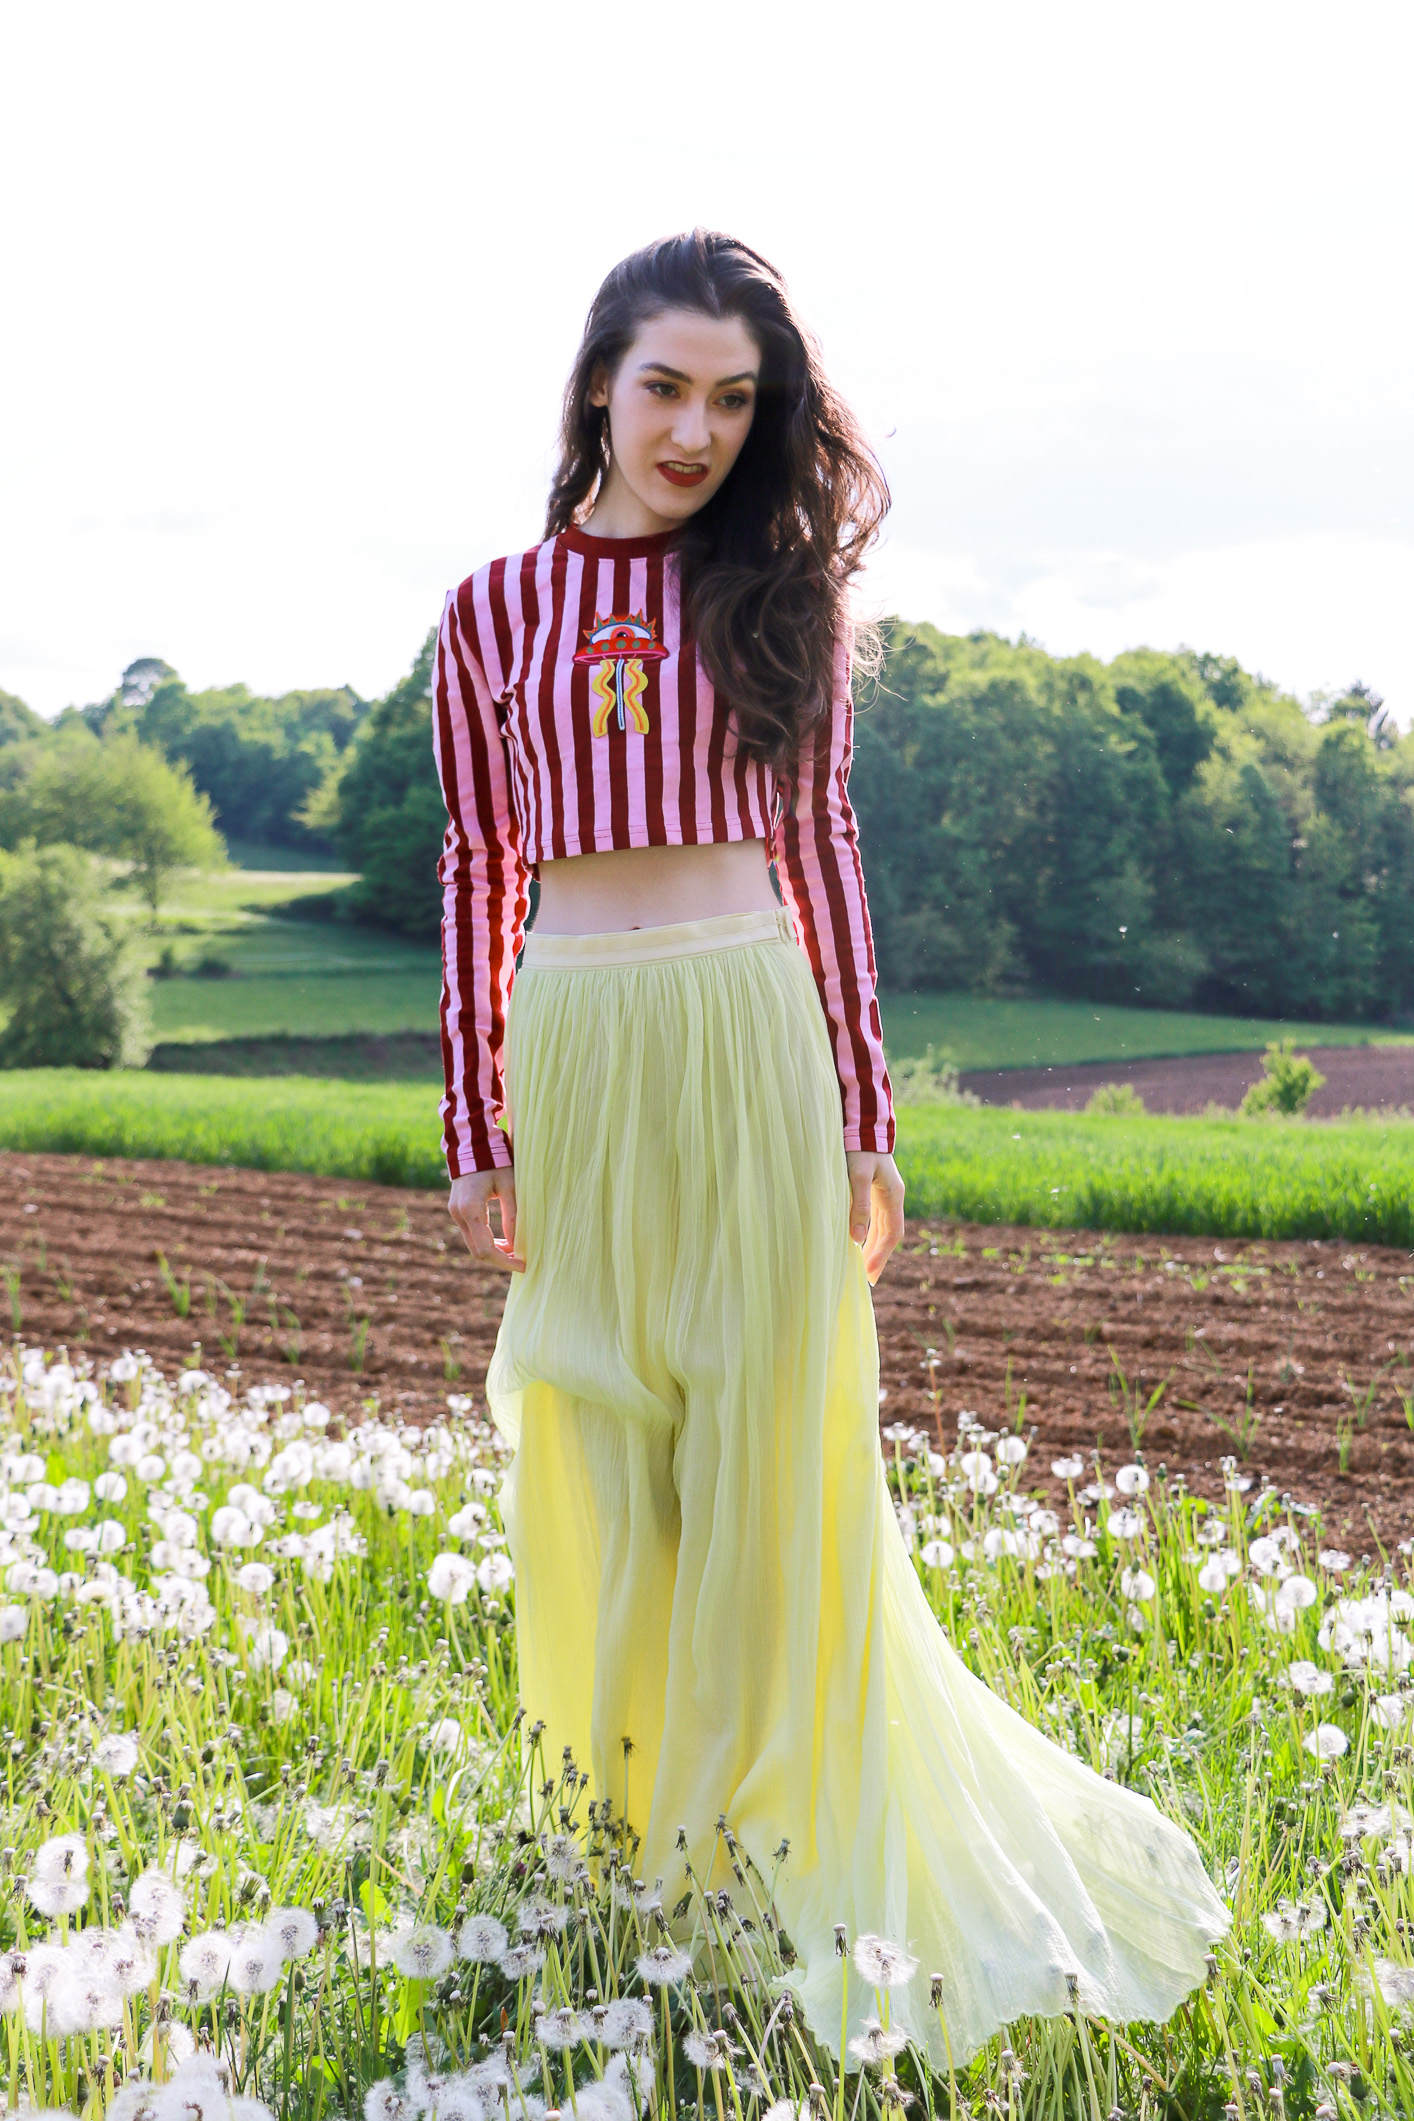 Fashion blogger Veronika Lipar of Brunette From Wall Street sharing how to wear yellow outfit this season